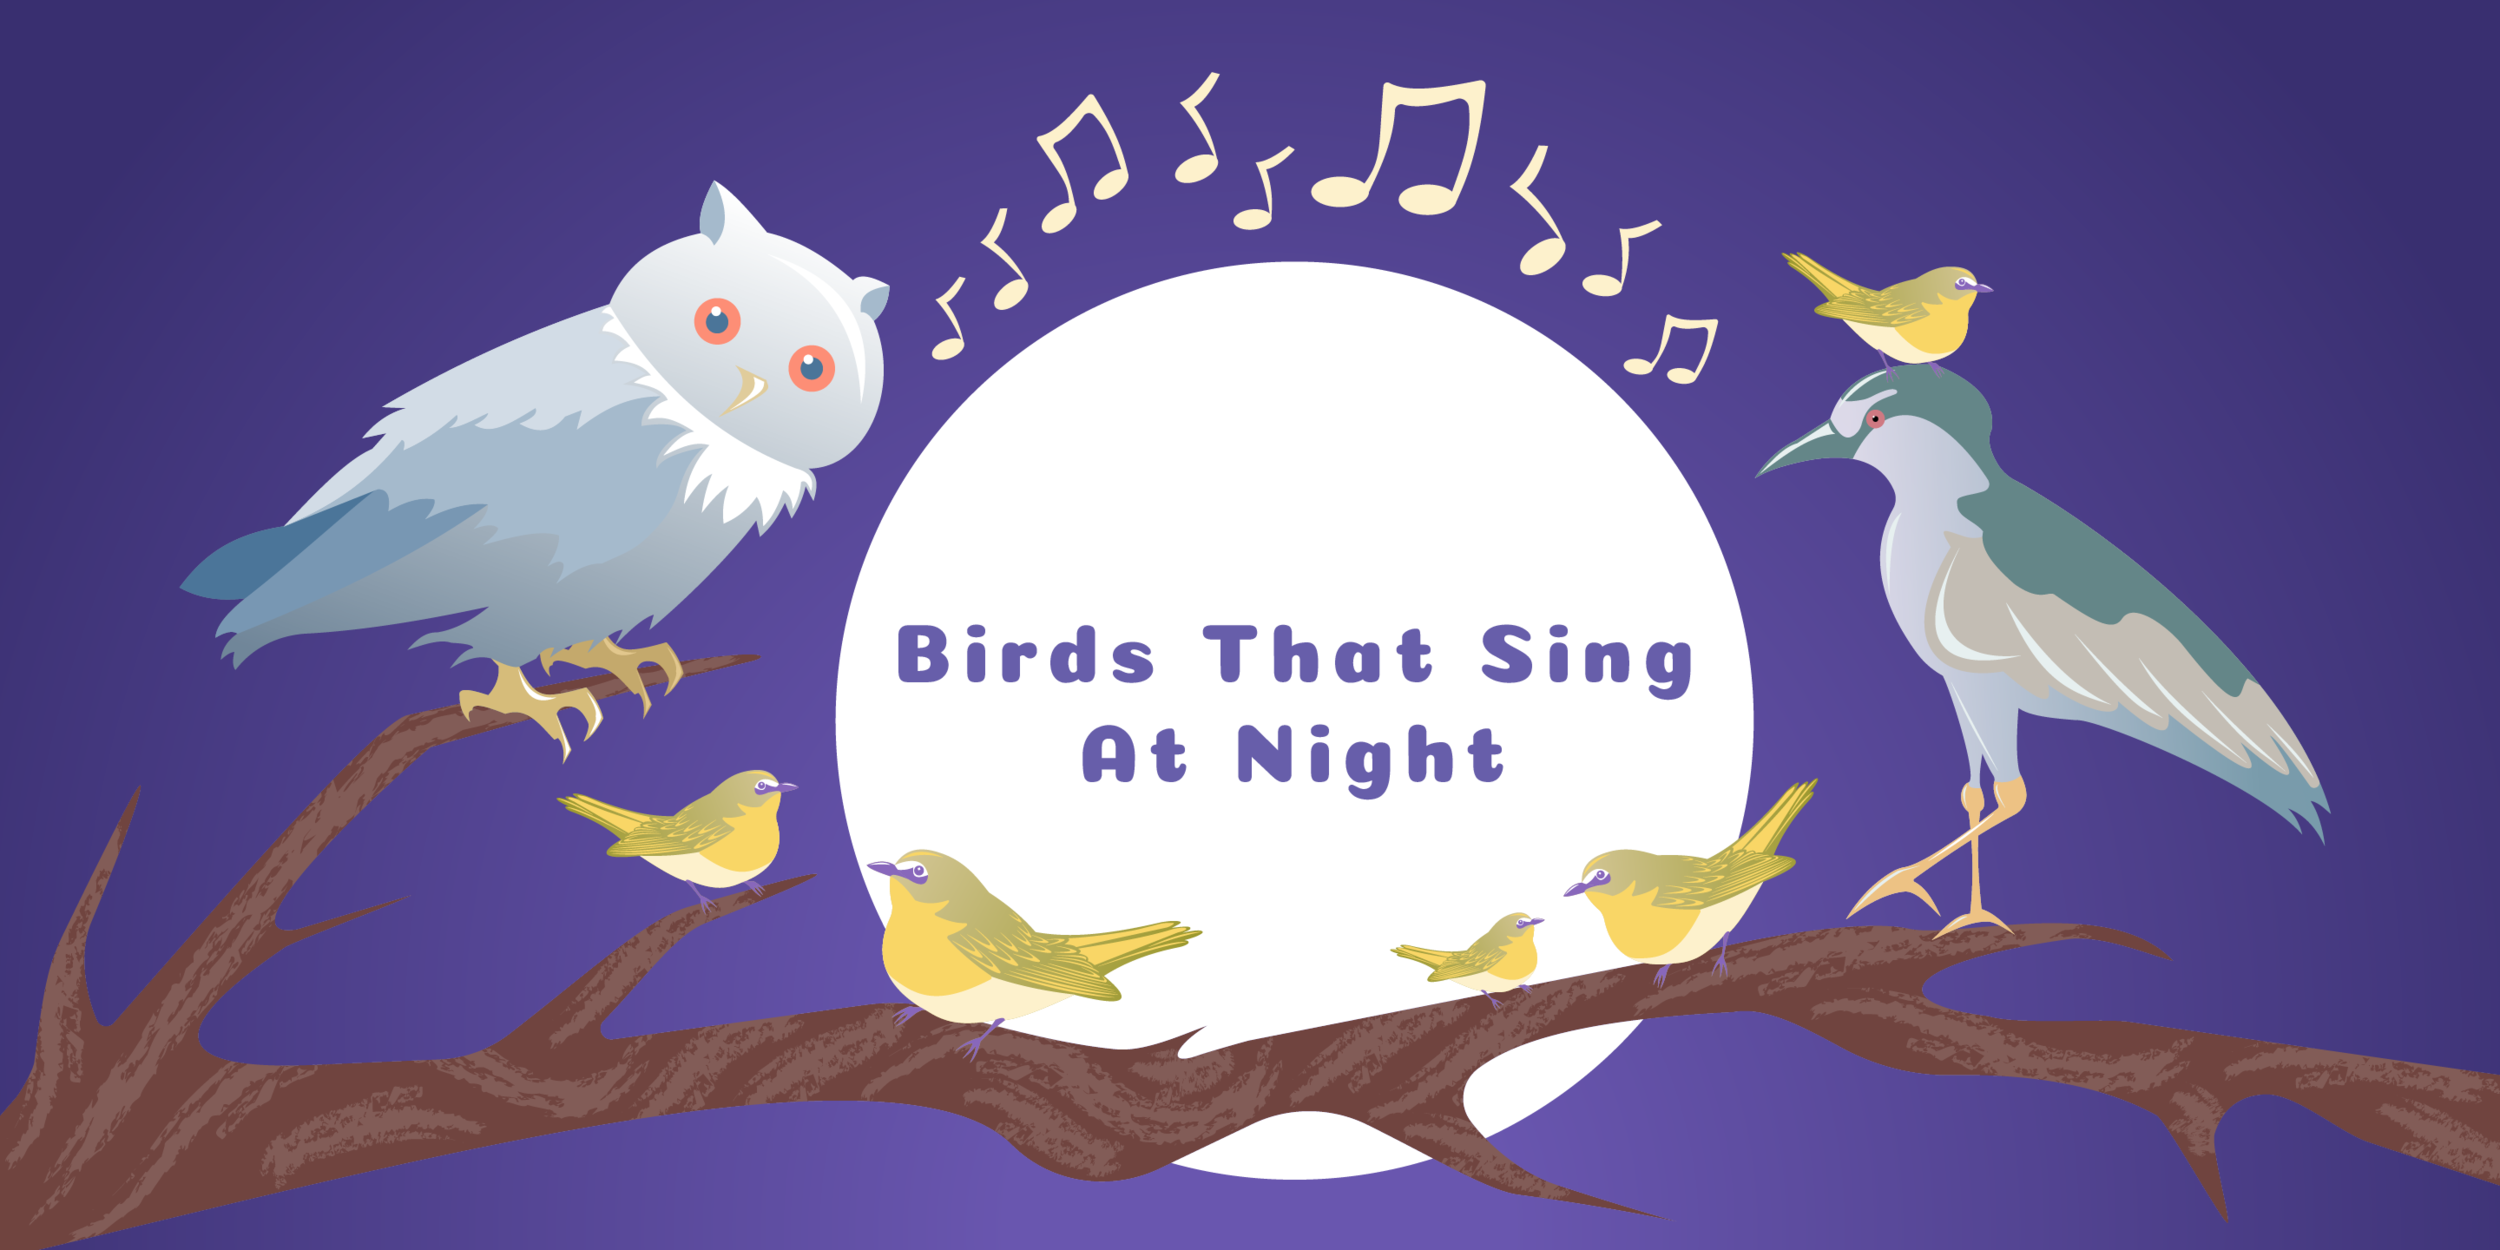 Birds That Sing at Night - 2019   Adobe Illustrator